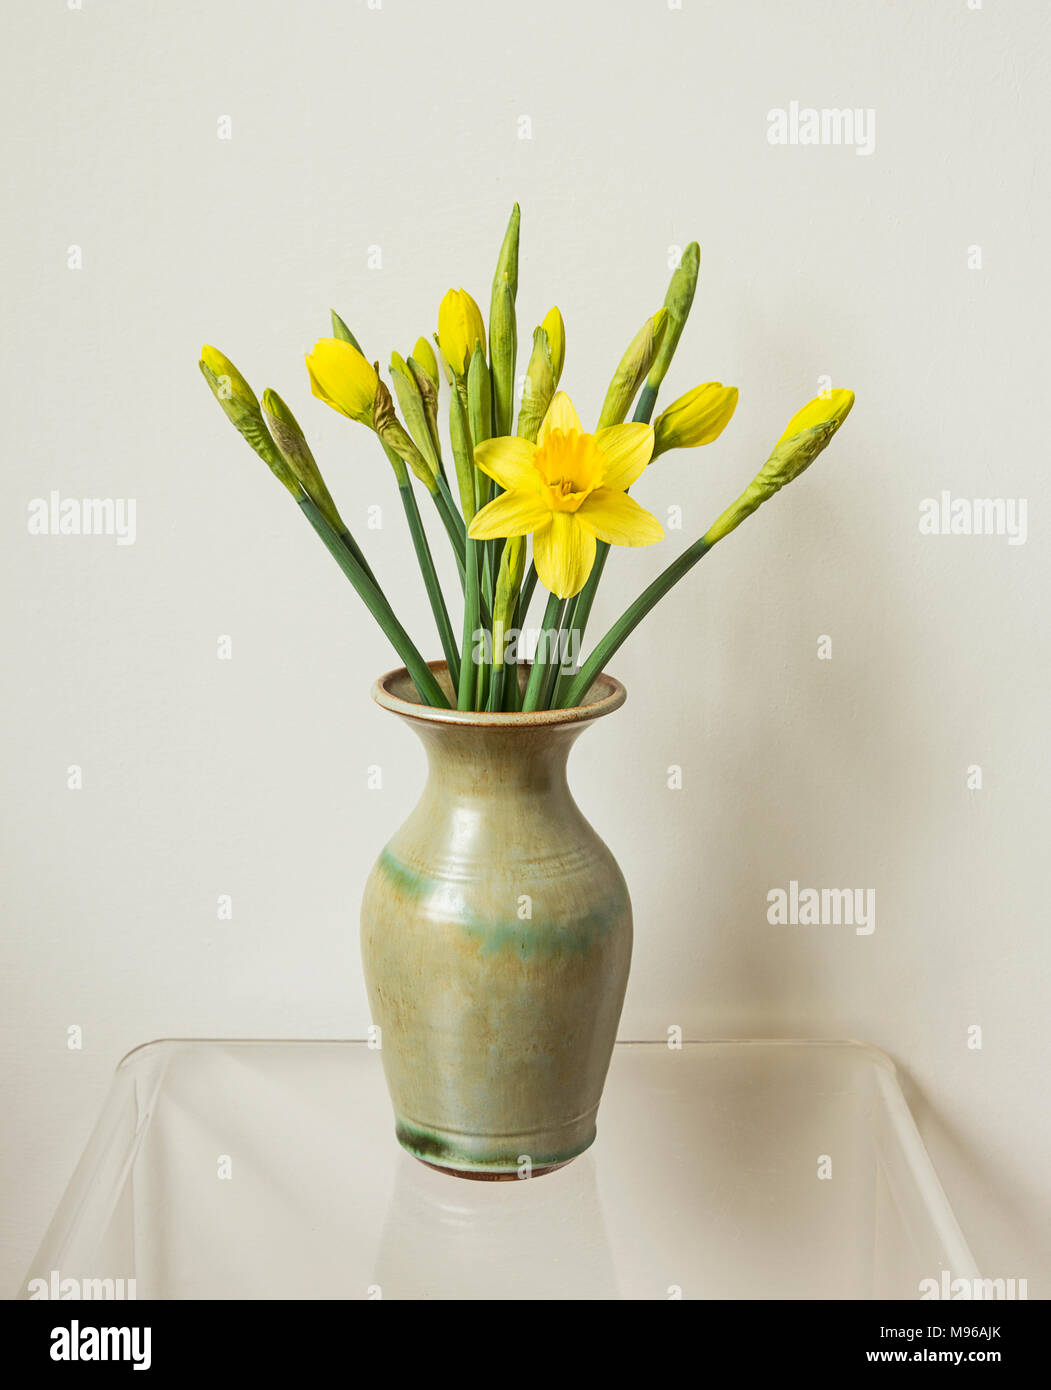 Daffodils in a green vase - Stock Image